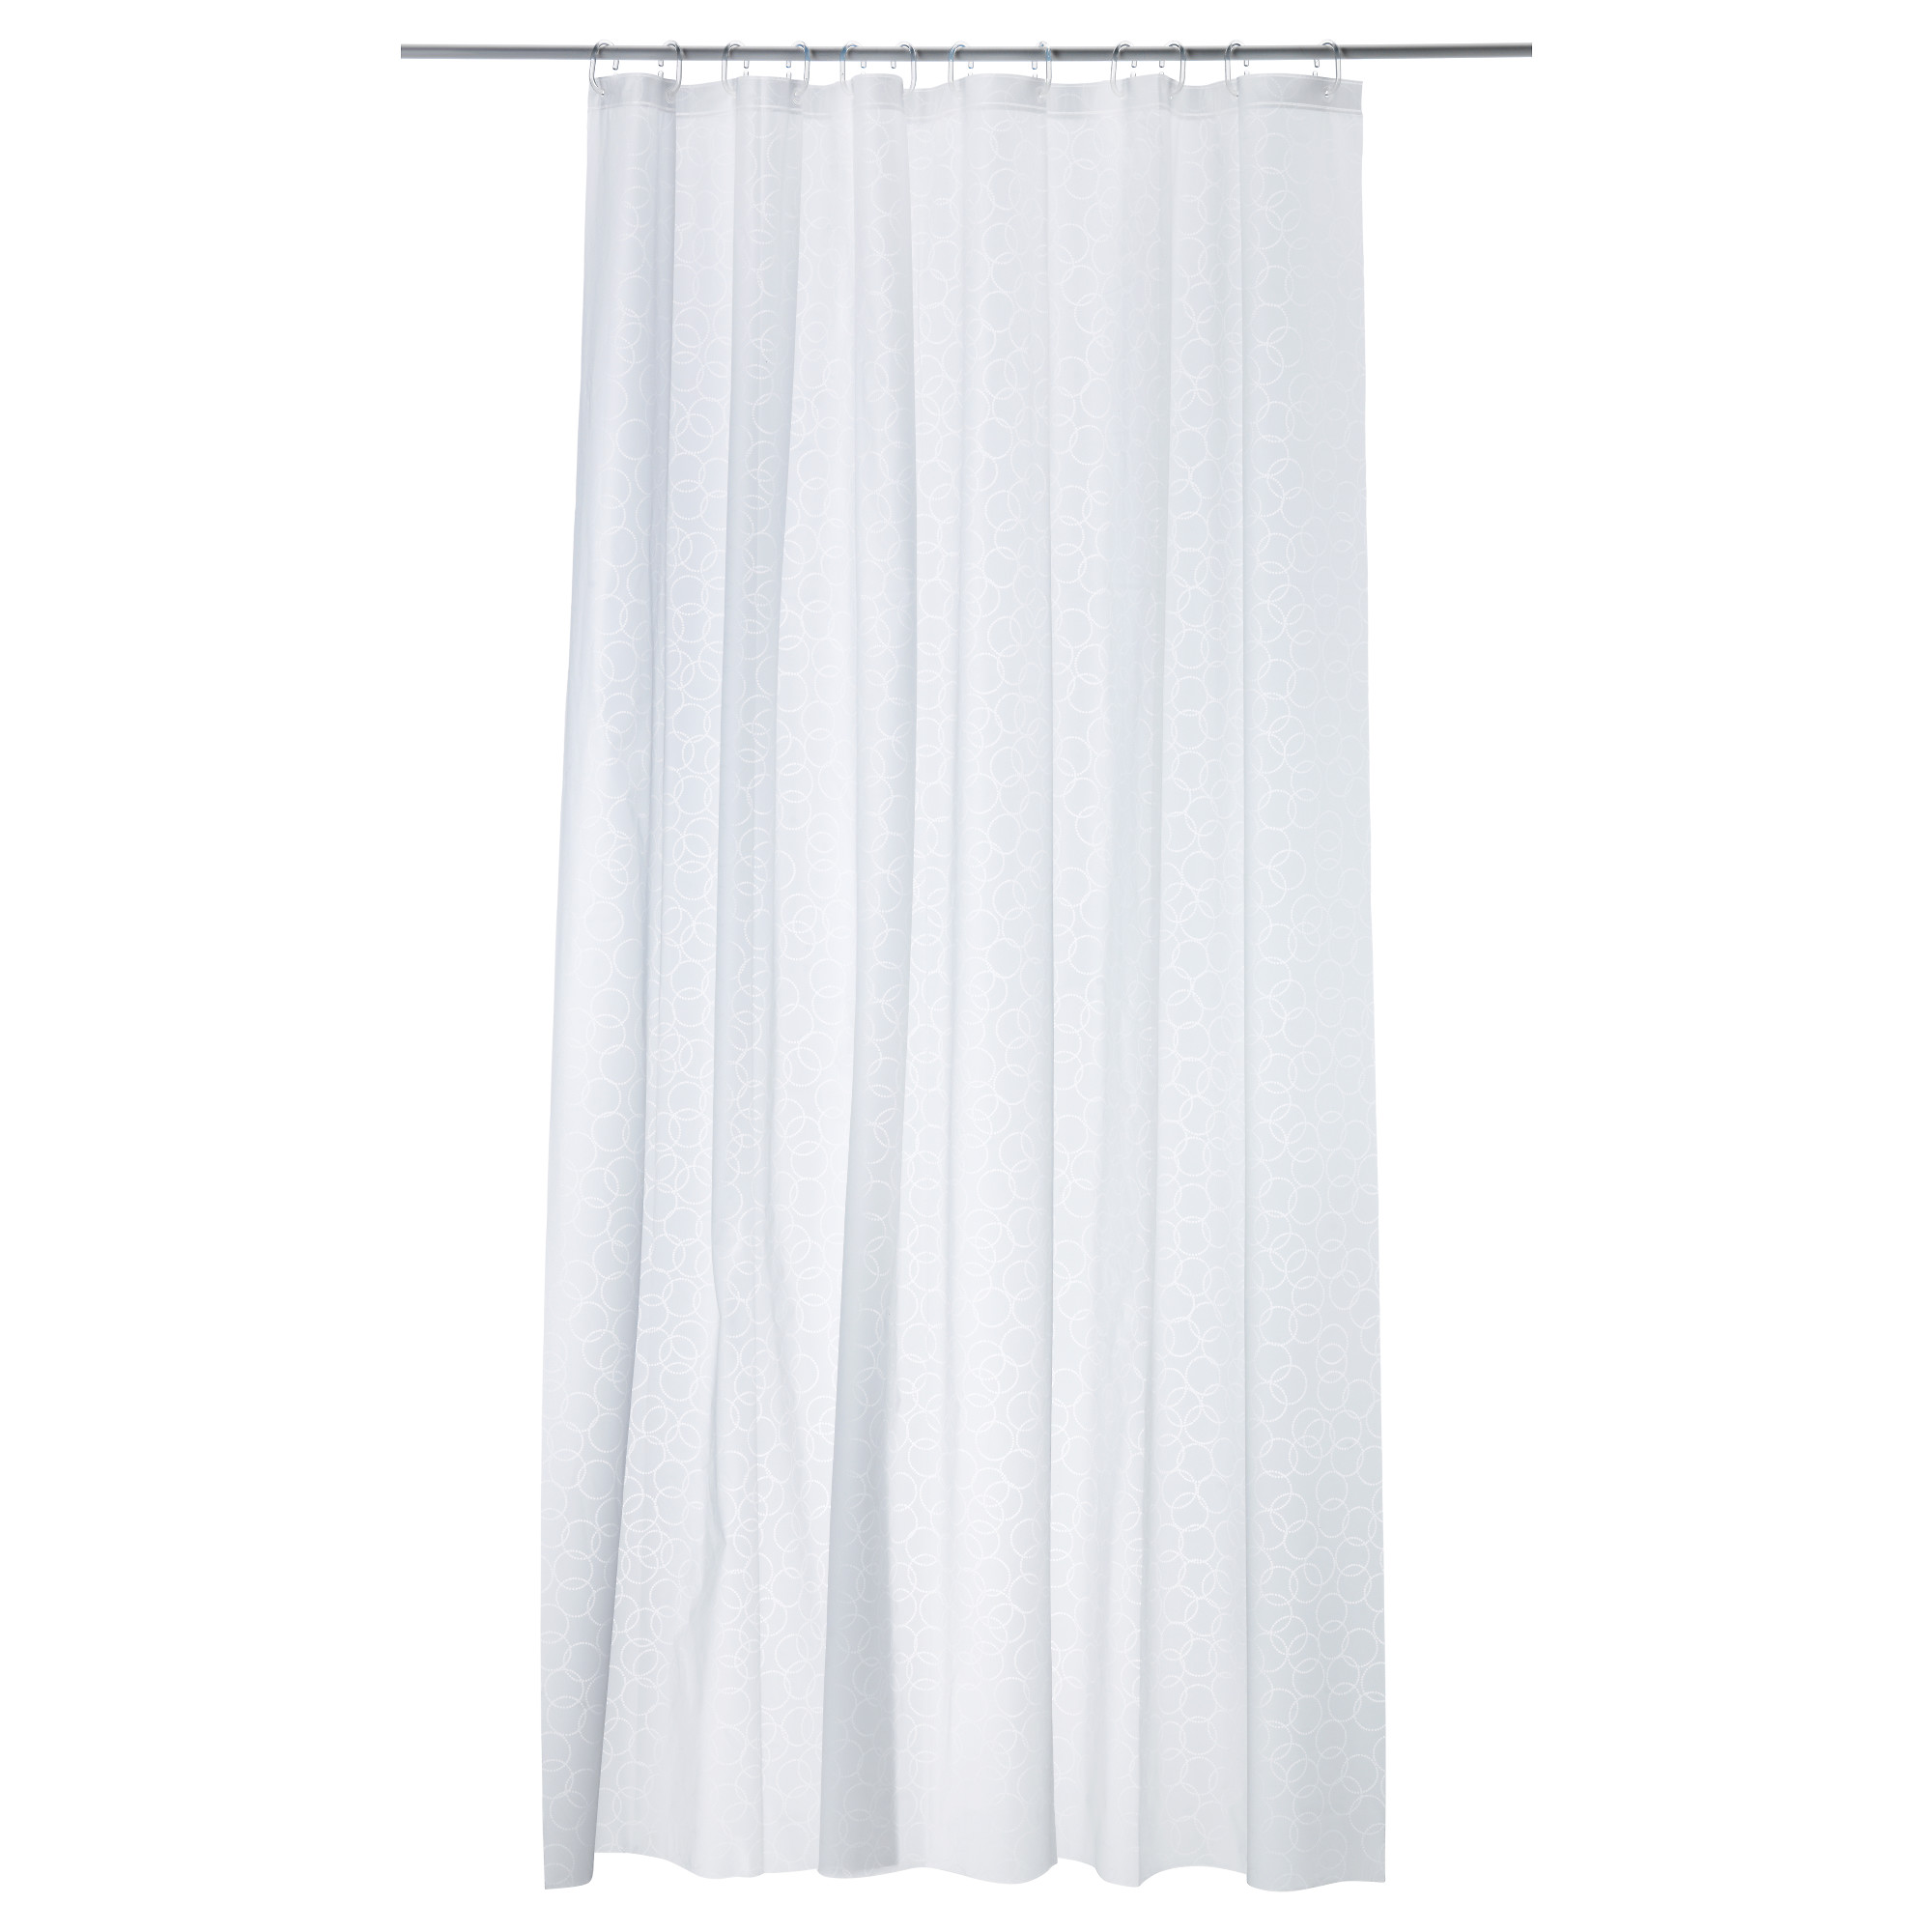 shower trendy white stripe long dot ruffle fabric walmart curtain frilly striped gopelling bathroom extra curtains black polka net se masculine sizes and seashell